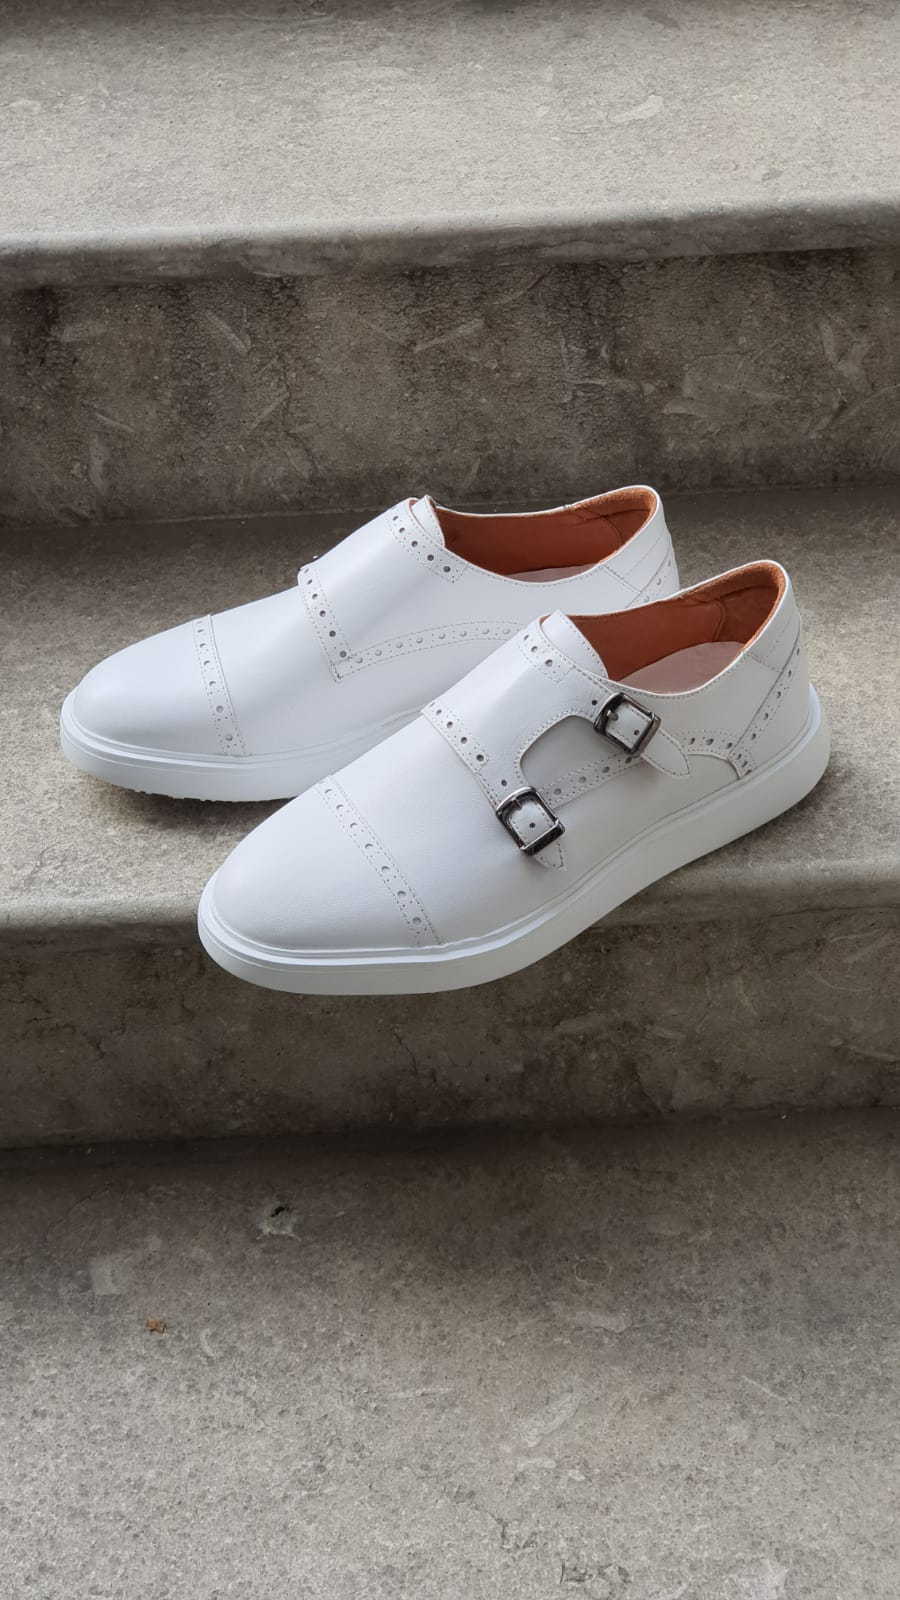 White Monk Strap Shoes by Sardinelli